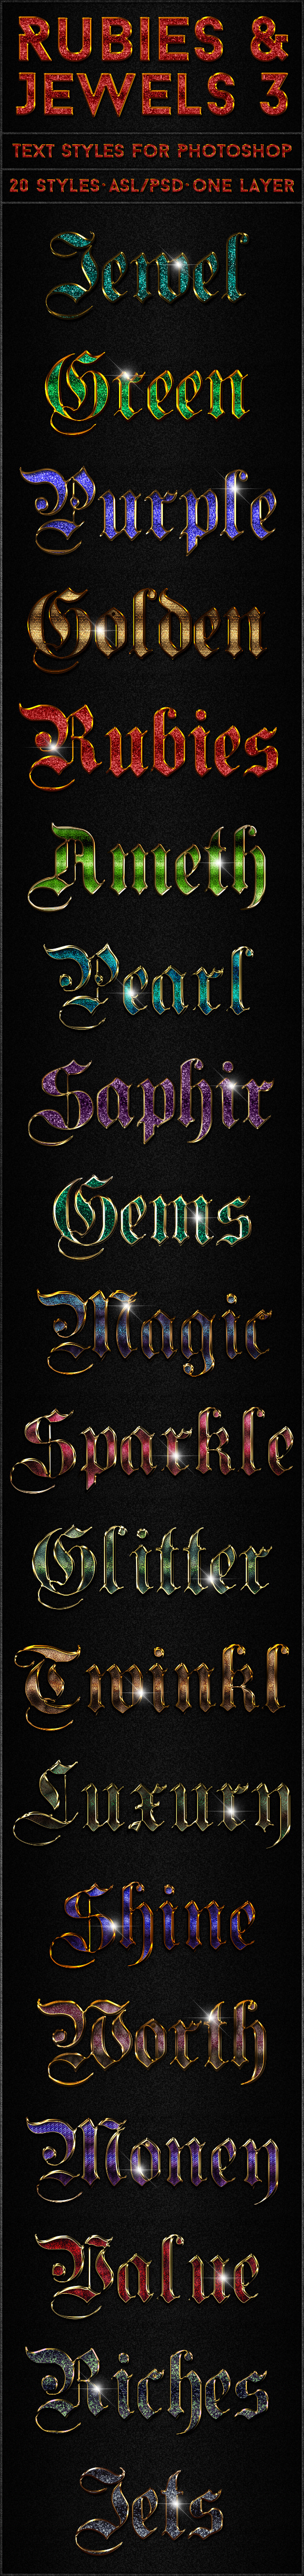 Rubies & Jewels 3 - Text Styles - Text Effects Styles